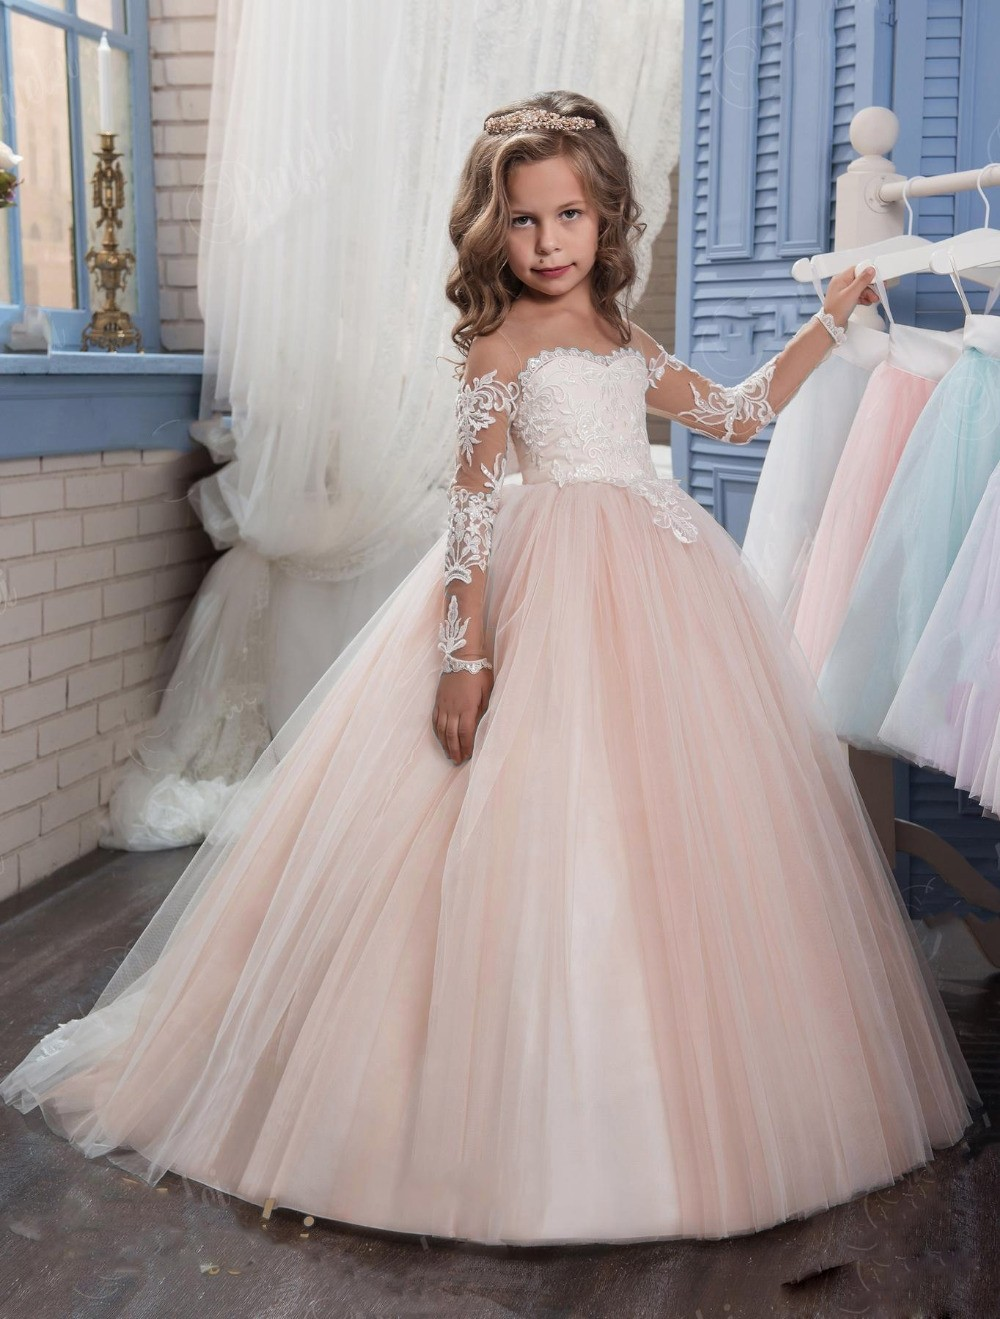 Cute   Flower     Girls     Dresses   for Weddings 2019 Long Sleeve Appliques Lace Ball Gown   Girls   Pageant   Dress   Kids Birthday Gowns